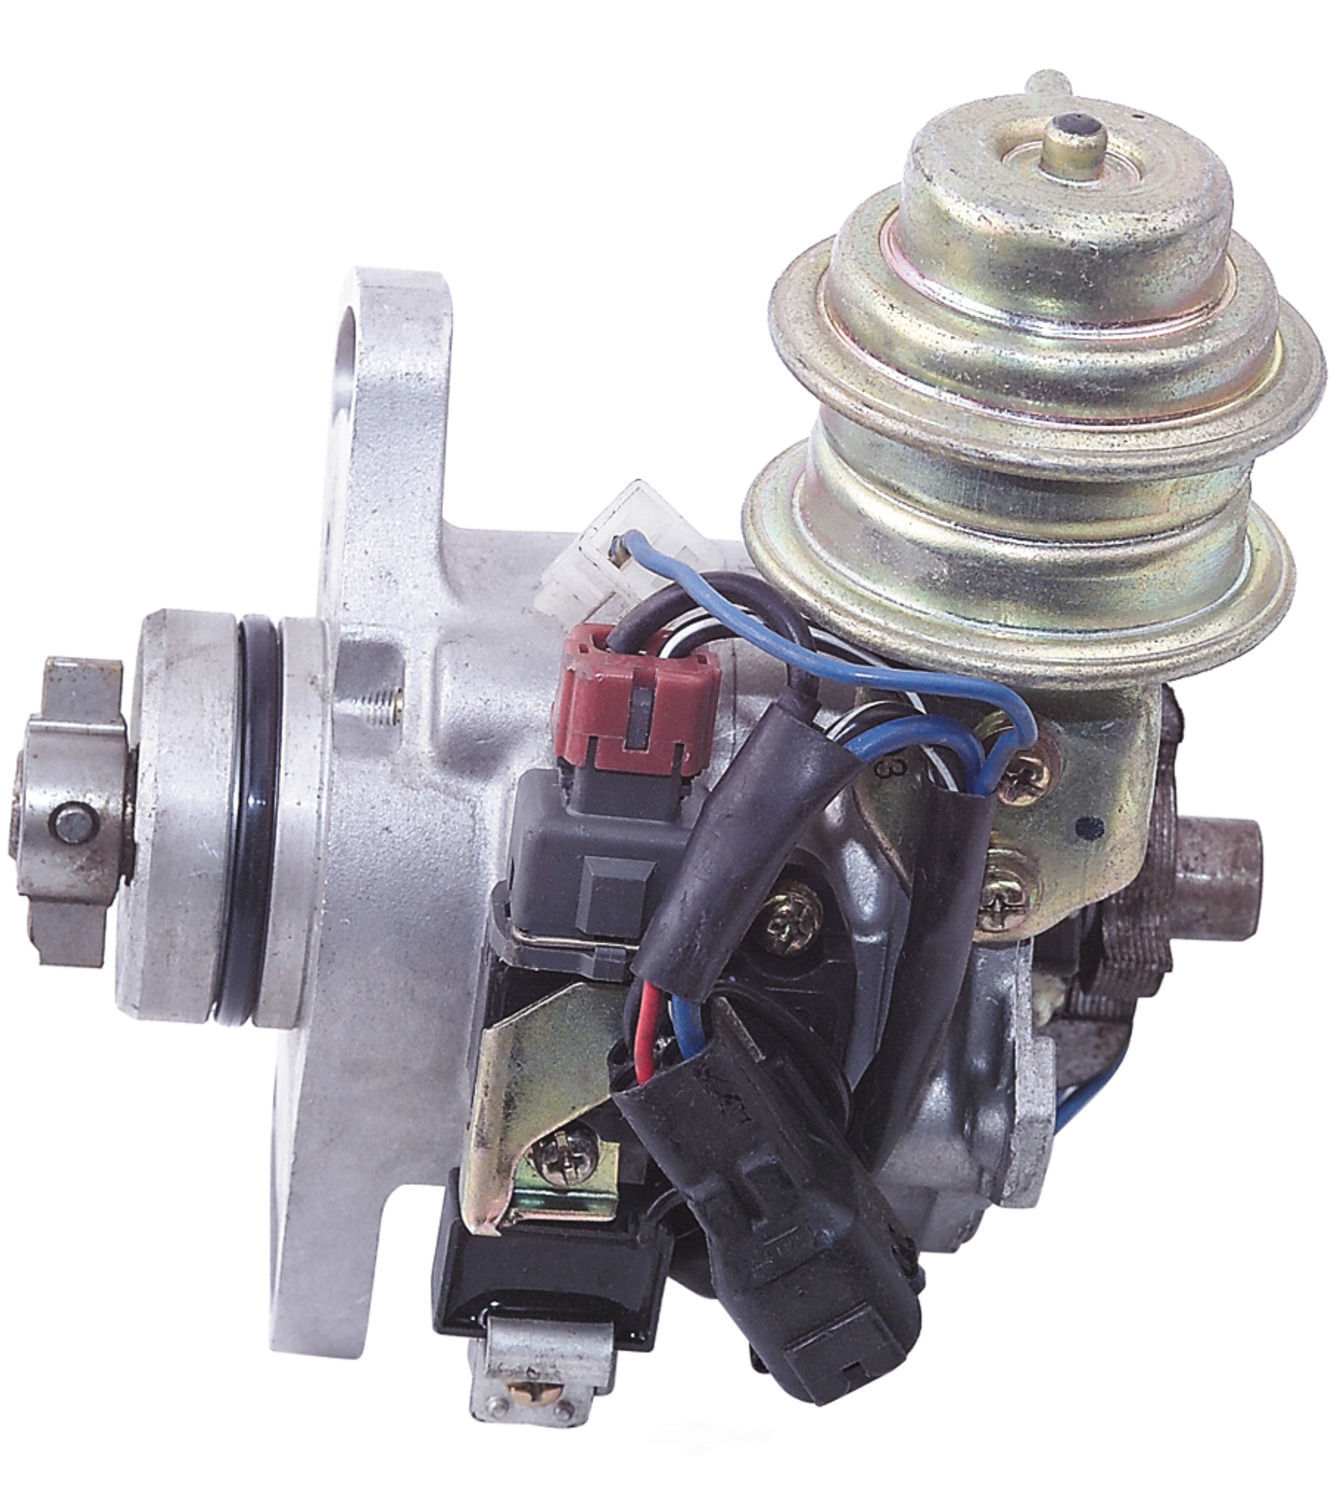 CARDONE/A-1 CARDONE - Remanufactured Distributor(Electronic) - A1C 31-36475